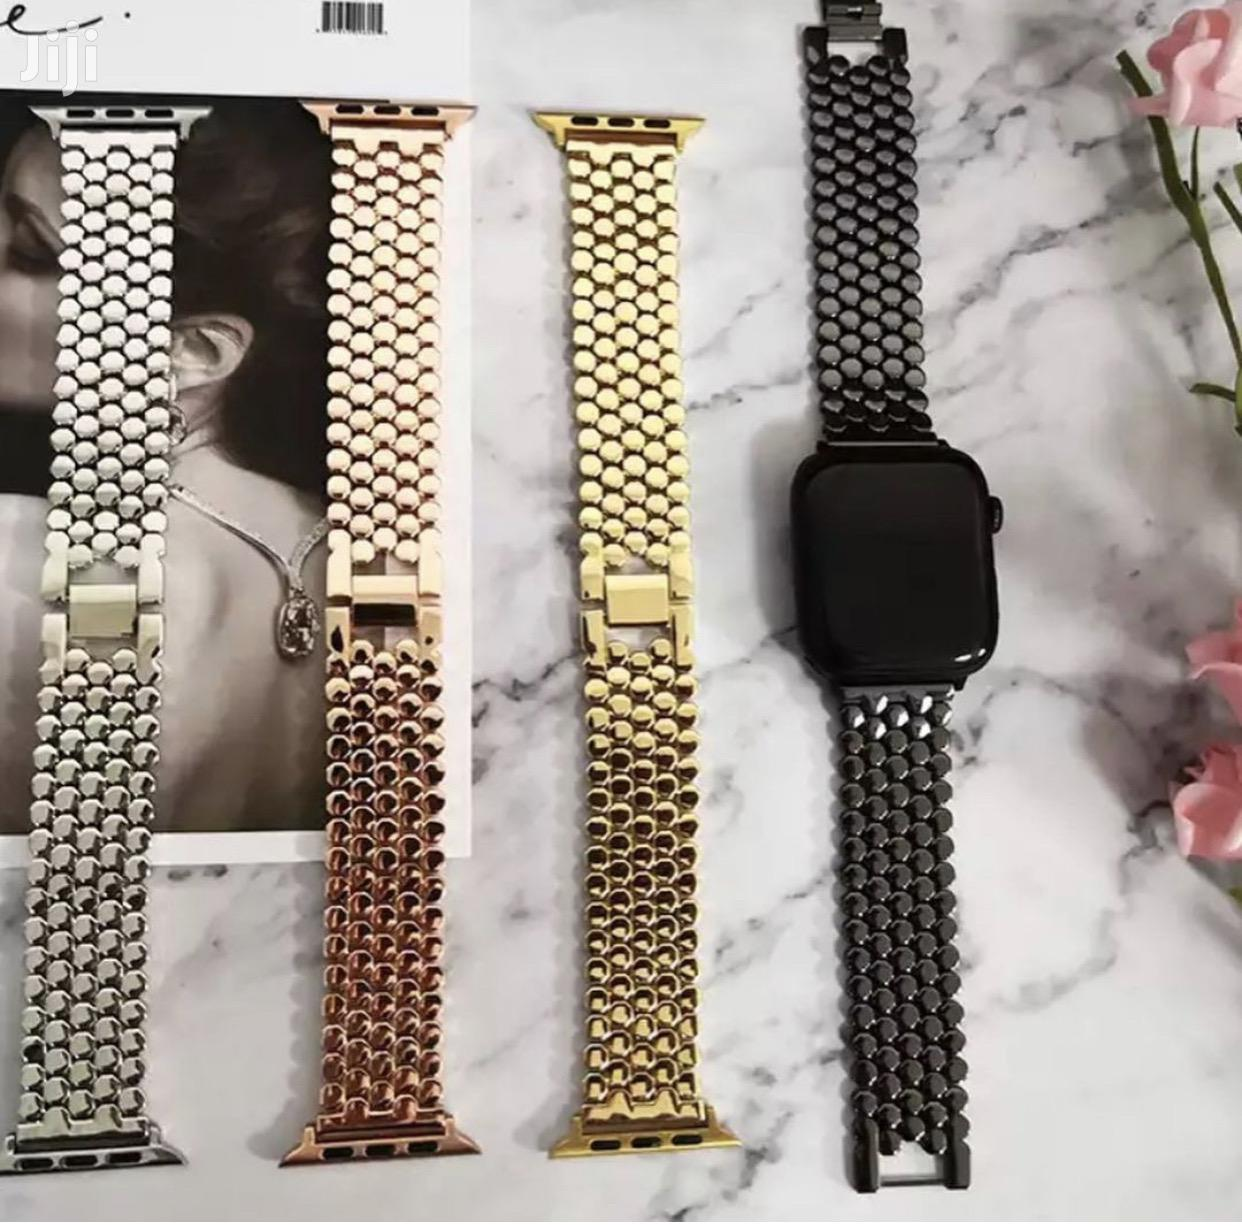 P1 Stainless Steel Strap/Band for Apple Watch Series 1 to 6